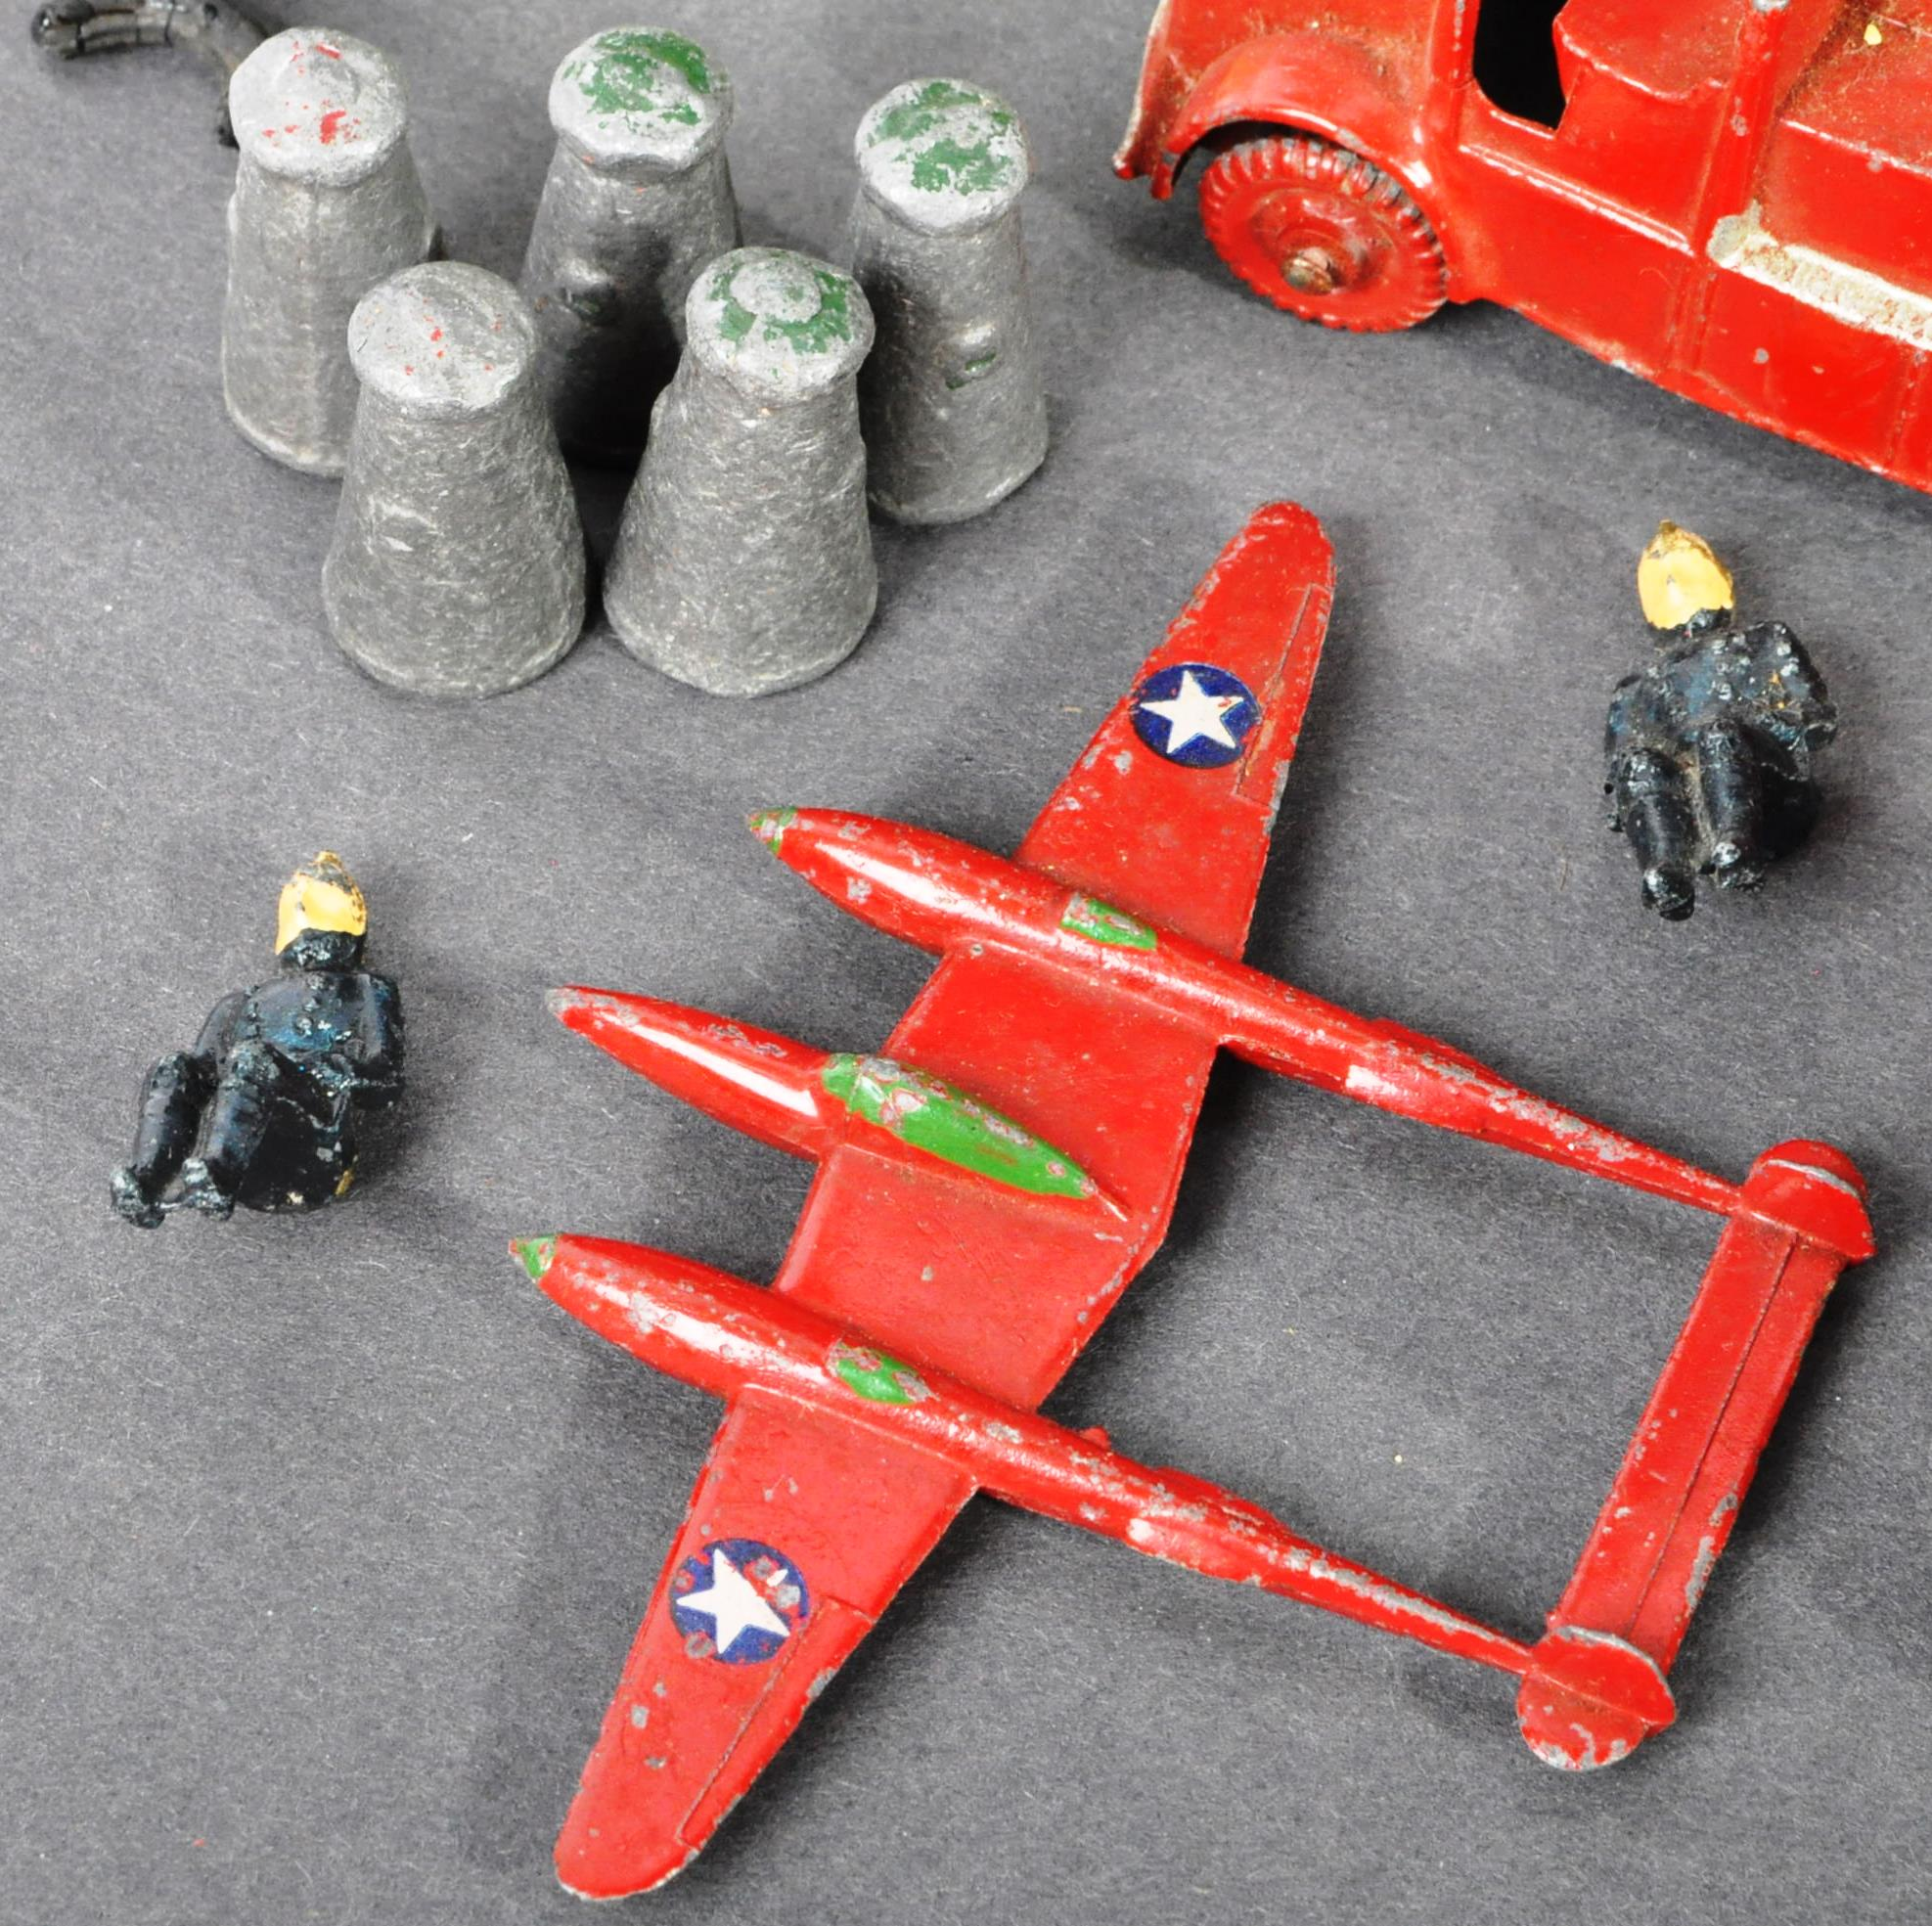 DIECAST - COLLECTION OF ASSORTED ANTIQUE / VINTAGE DIECAST - Image 9 of 9